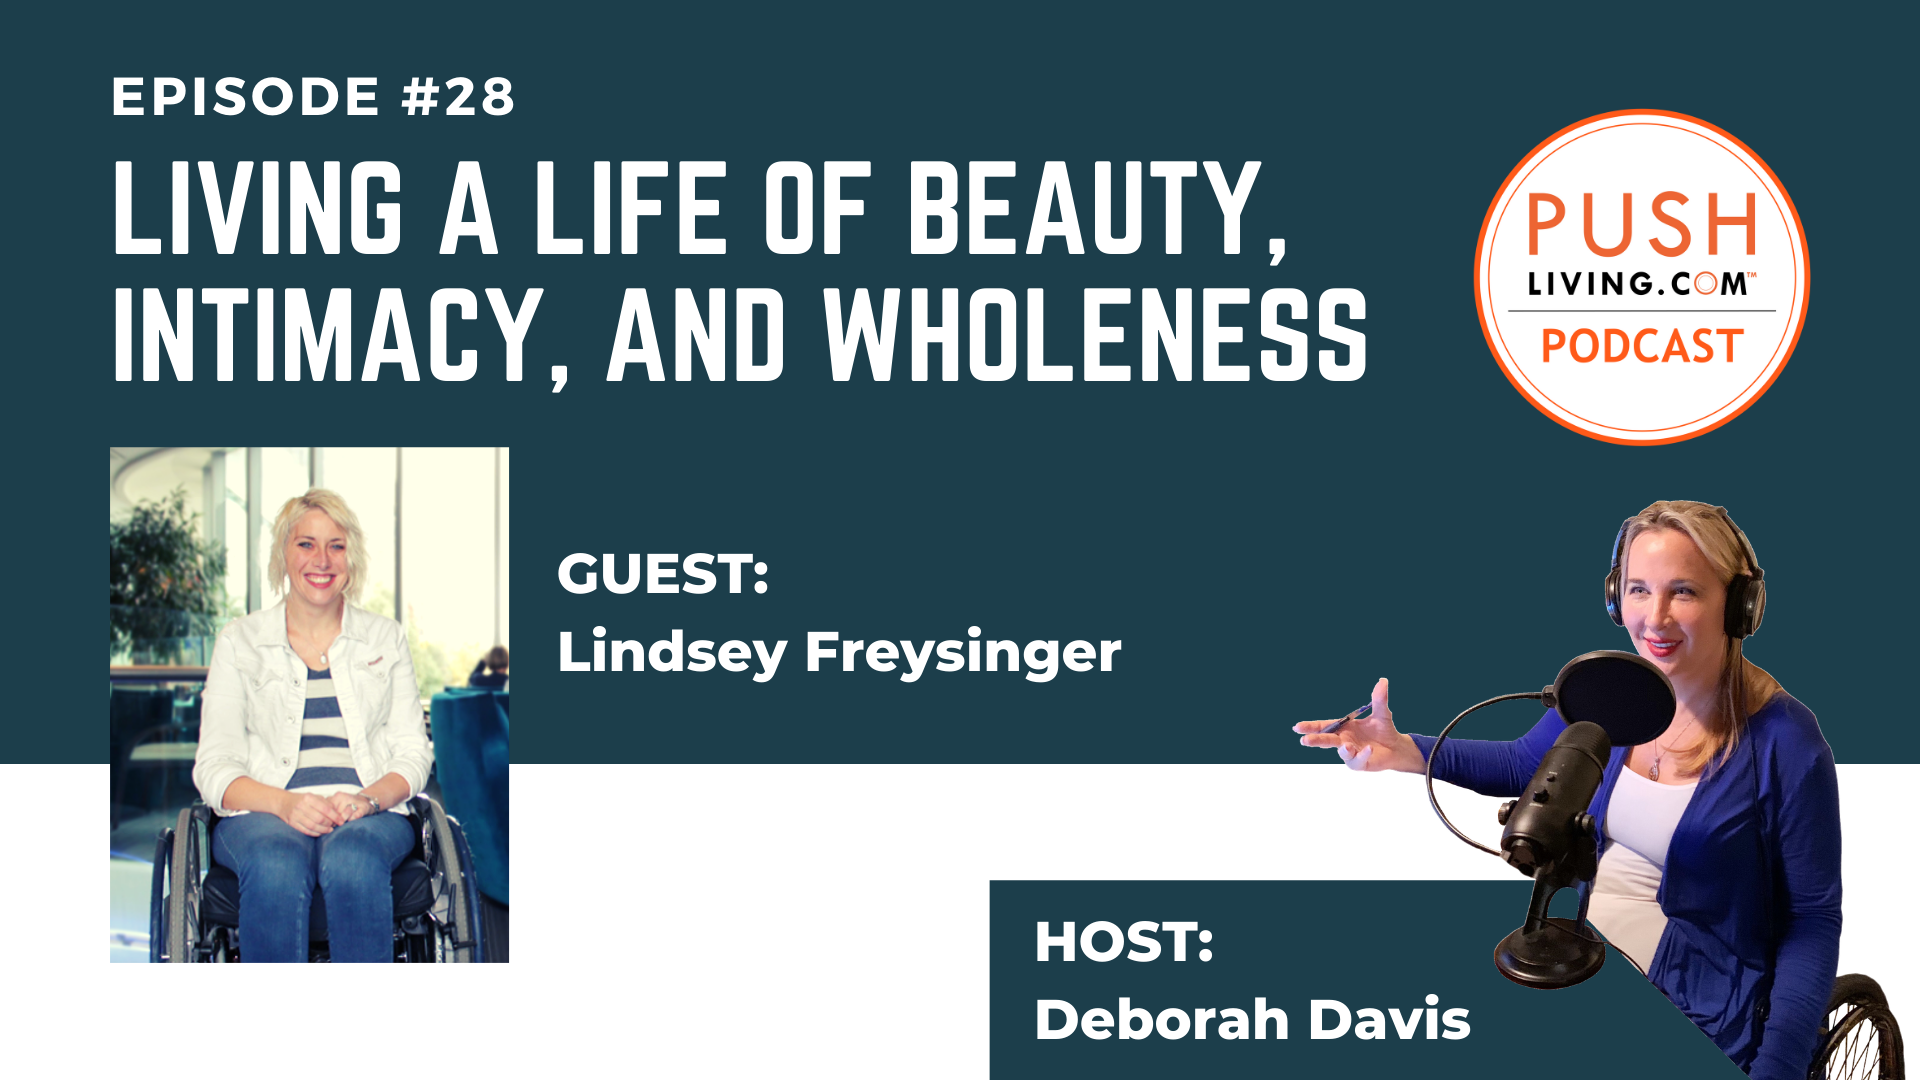 Podcast28 Cover 1 - PUSHLiving Podcast #28: Living a Life of Beauty, Intimacy, and Wholeness  with Lindsey Freysinger